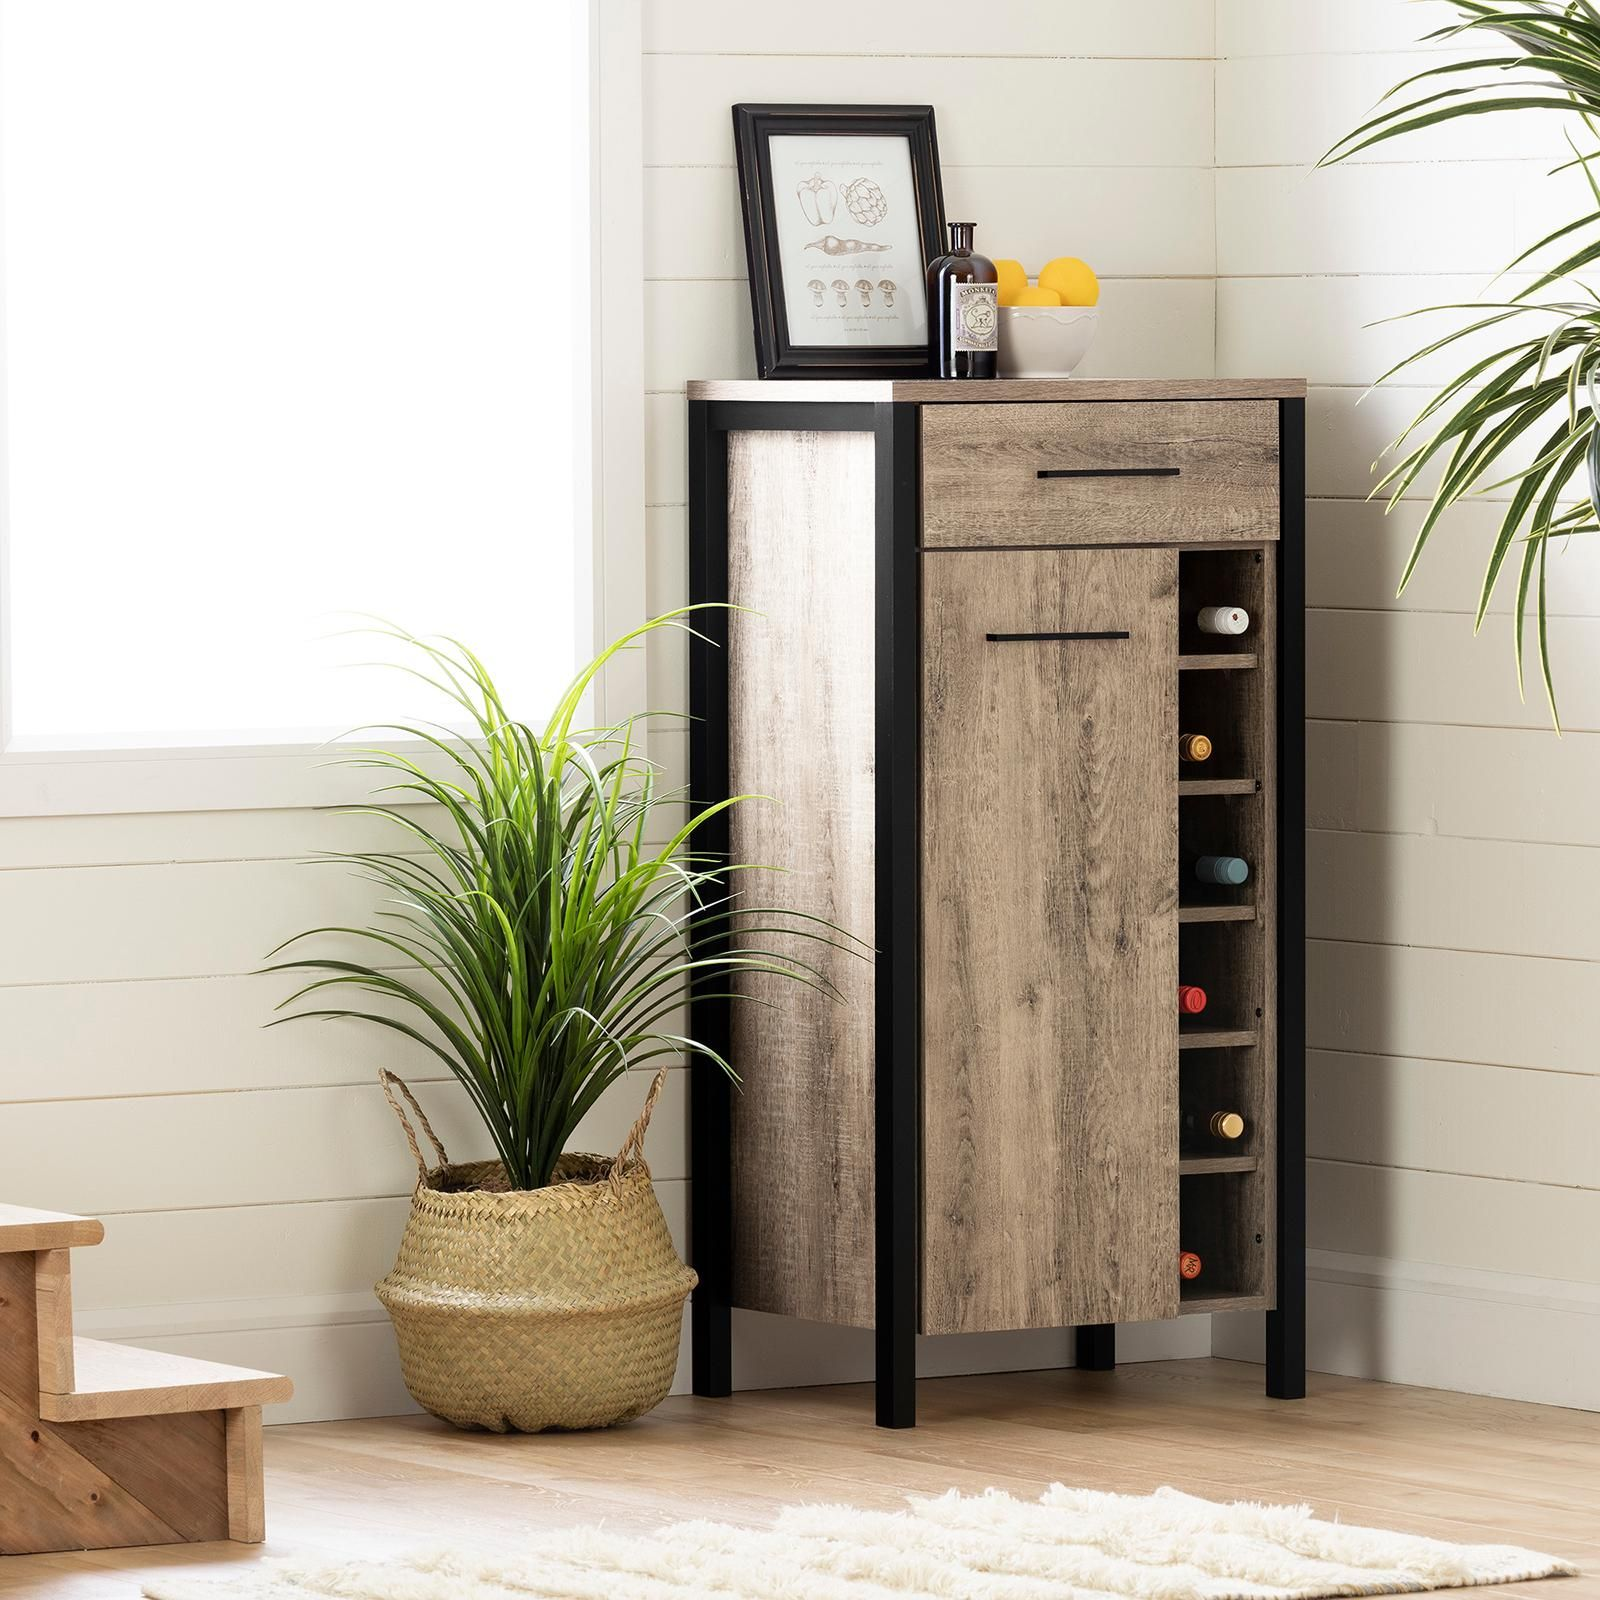 South Shore Munich Industrial Design 2-Drawer Mobile File Cabinet Weathered Oak